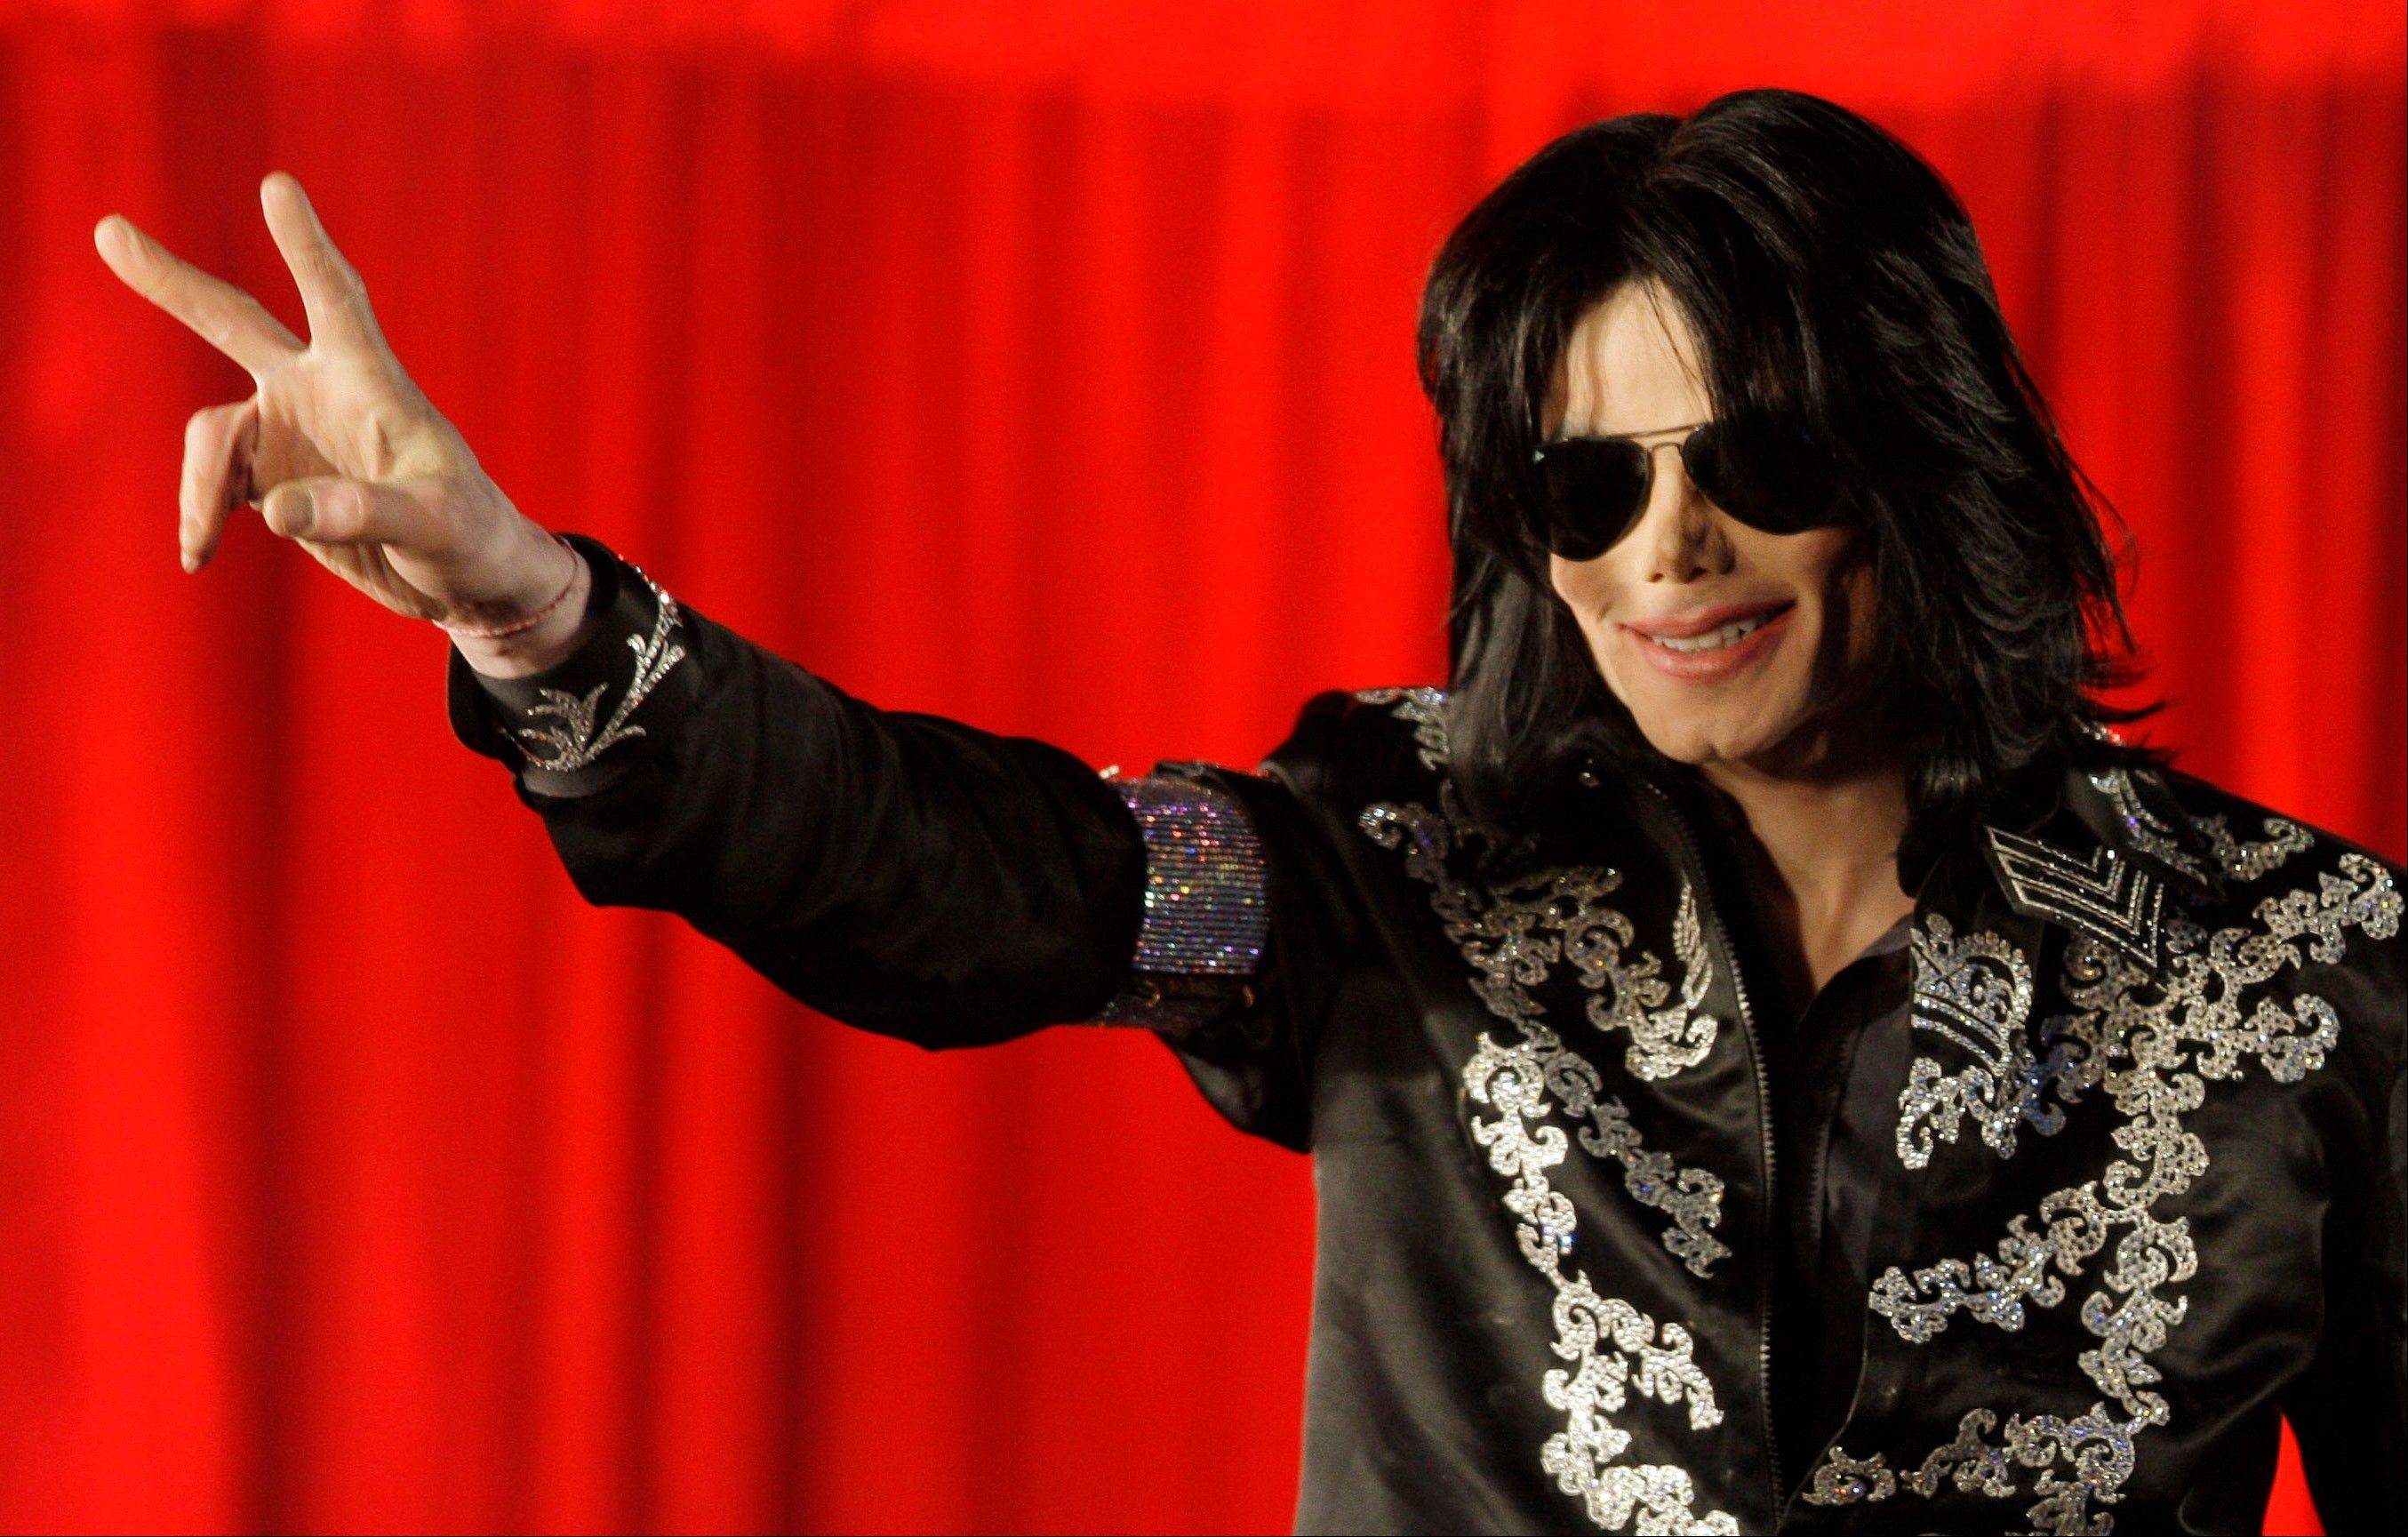 ** FILE ** In this March 5, 2009 file photo, US singer Michael Jackson announces that he is set to play ten live concerts at the London O2 Arena in July, which he announced at a press conference at the London O2 Arena. Lawyers for AEG Live LLC called their final witness on Wednesday, Sept. 18, 2013, in a negligent hiring lawsuit filed by Jackson's mother against the concert promotion company. AEG Live has shown jurors testimony from several of Jackson's former doctors and ended their case after playing the videotaped testimony of Jackson's longtime physician, Dr. Allan Metzger.